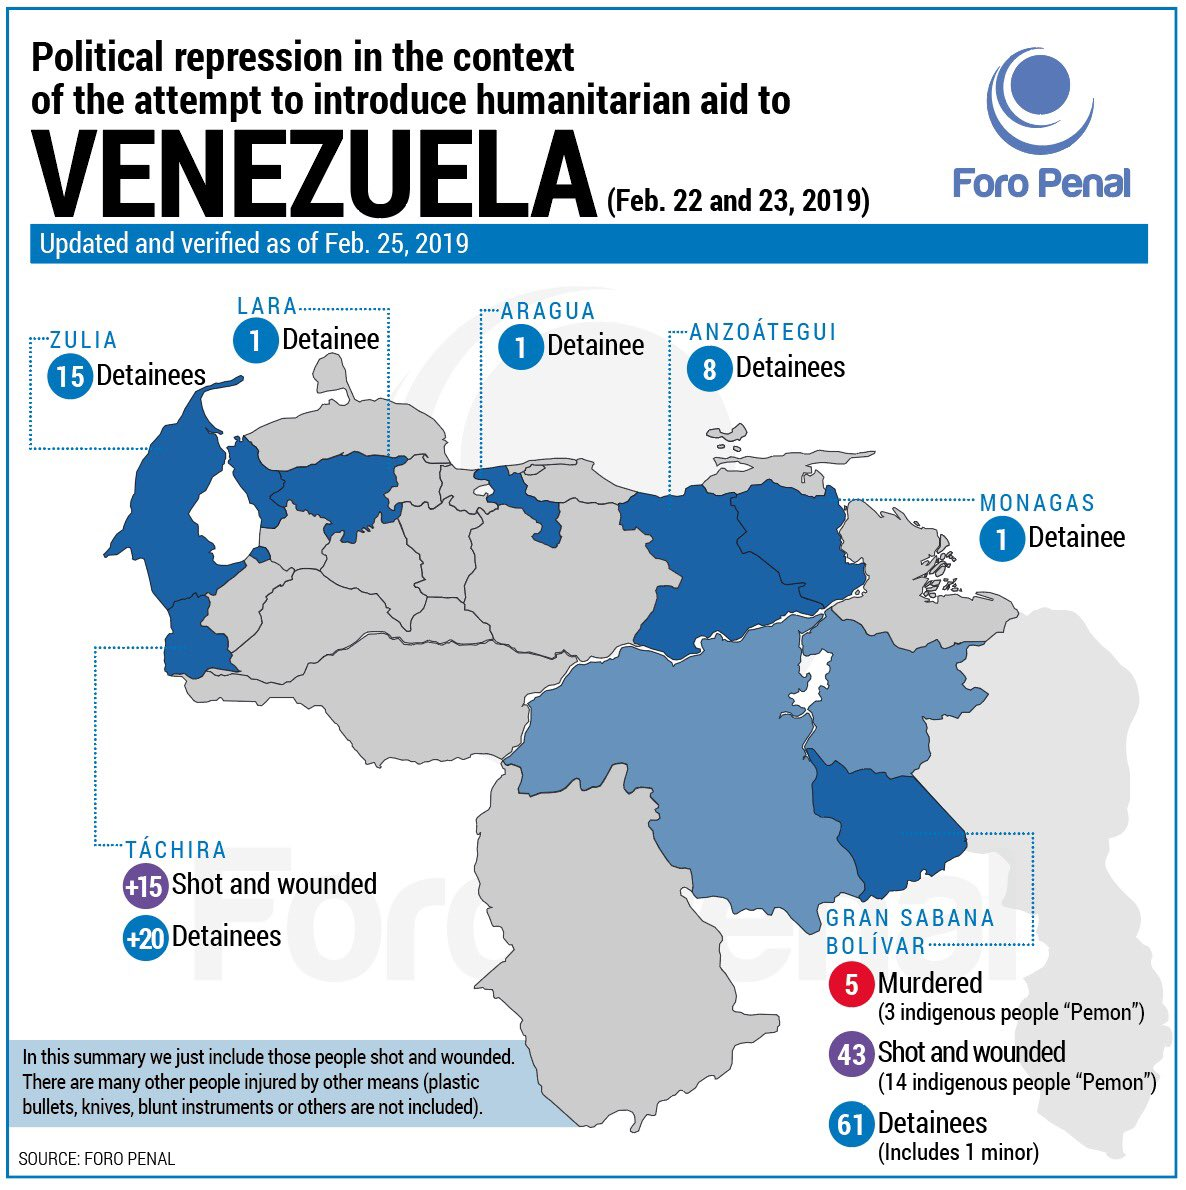 With updated information from our team throughout #Venezuela, here's an infographic on the political repression in the context of the attempt to introduce humanitarian aid between #22Feb and #23Feb @ForoPenal<br>http://pic.twitter.com/RBCRBfHfwP